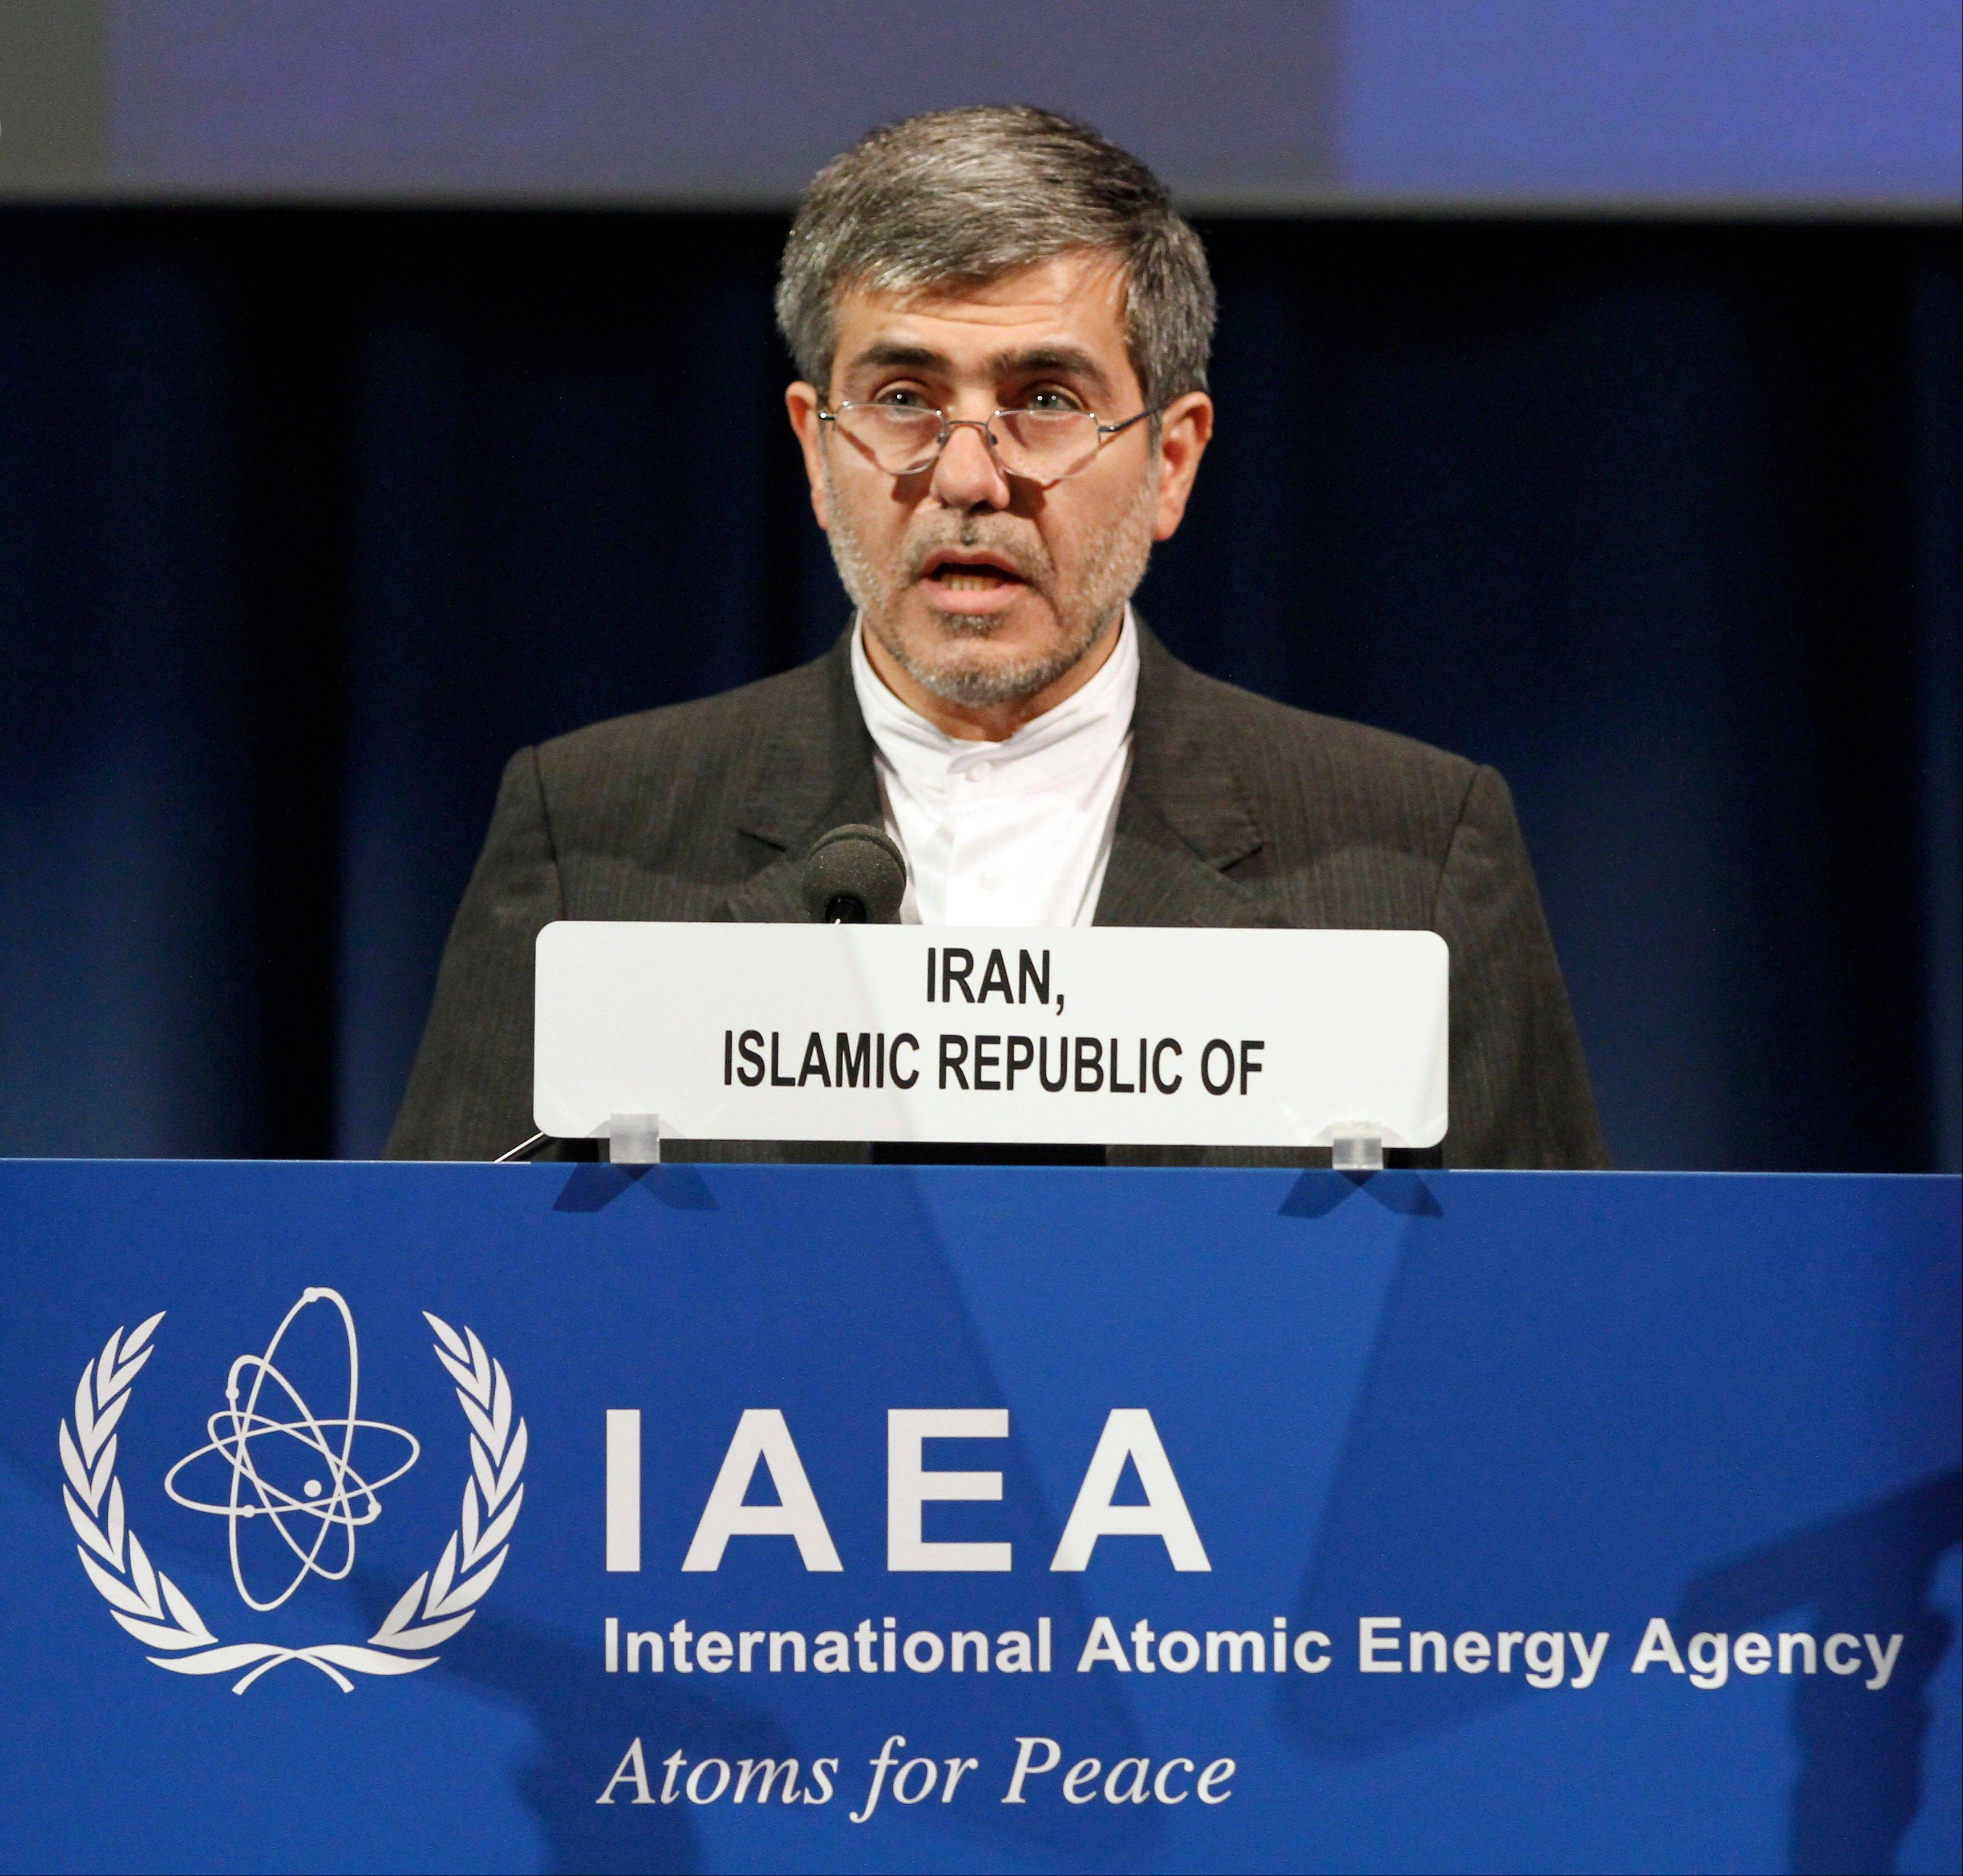 Fereidoun Abbasi Davani, Iran's Vice President and Head of Atomic Energy Organization, delivers a speech at the general conference of the International Atomic Energy Agency in Vienna, Austria, Monday.